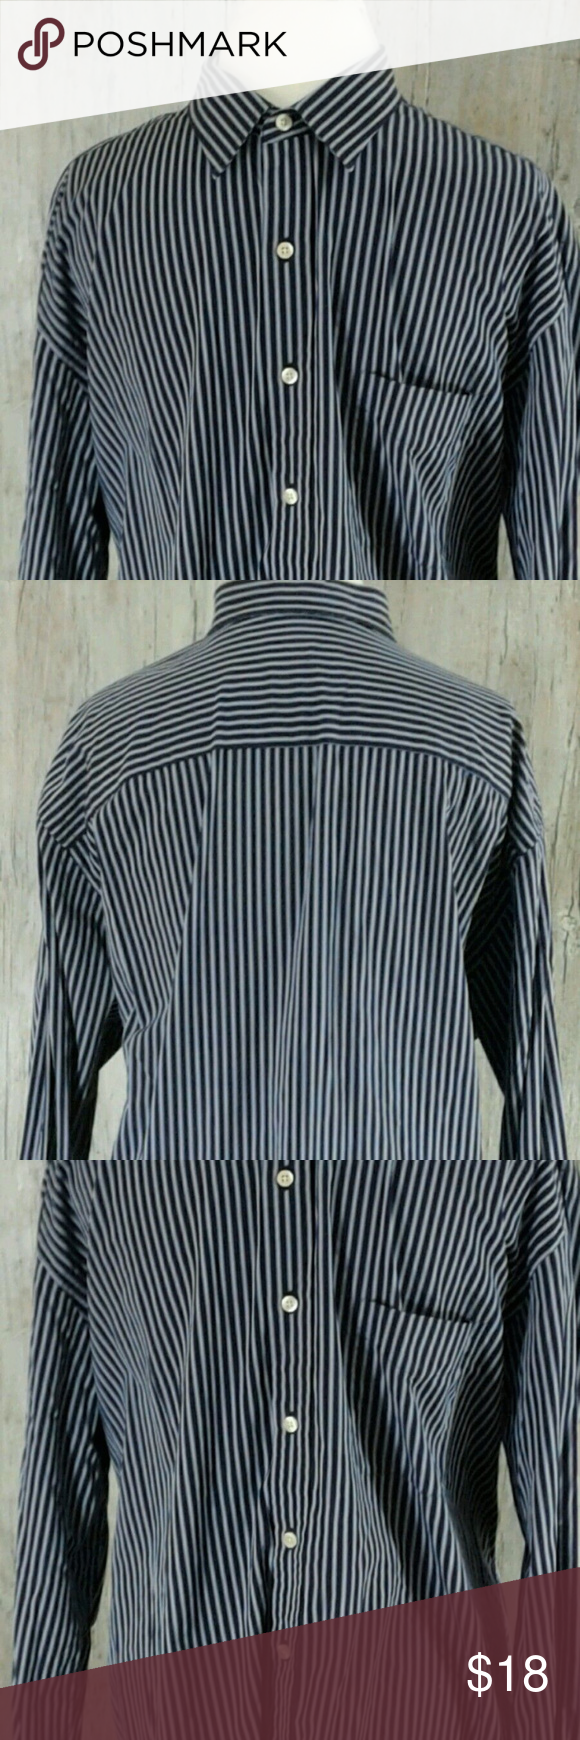 Austin Reed London Men S Ls Striped Shirt Xl Striped Shirt Blue Striped Shirt Striped